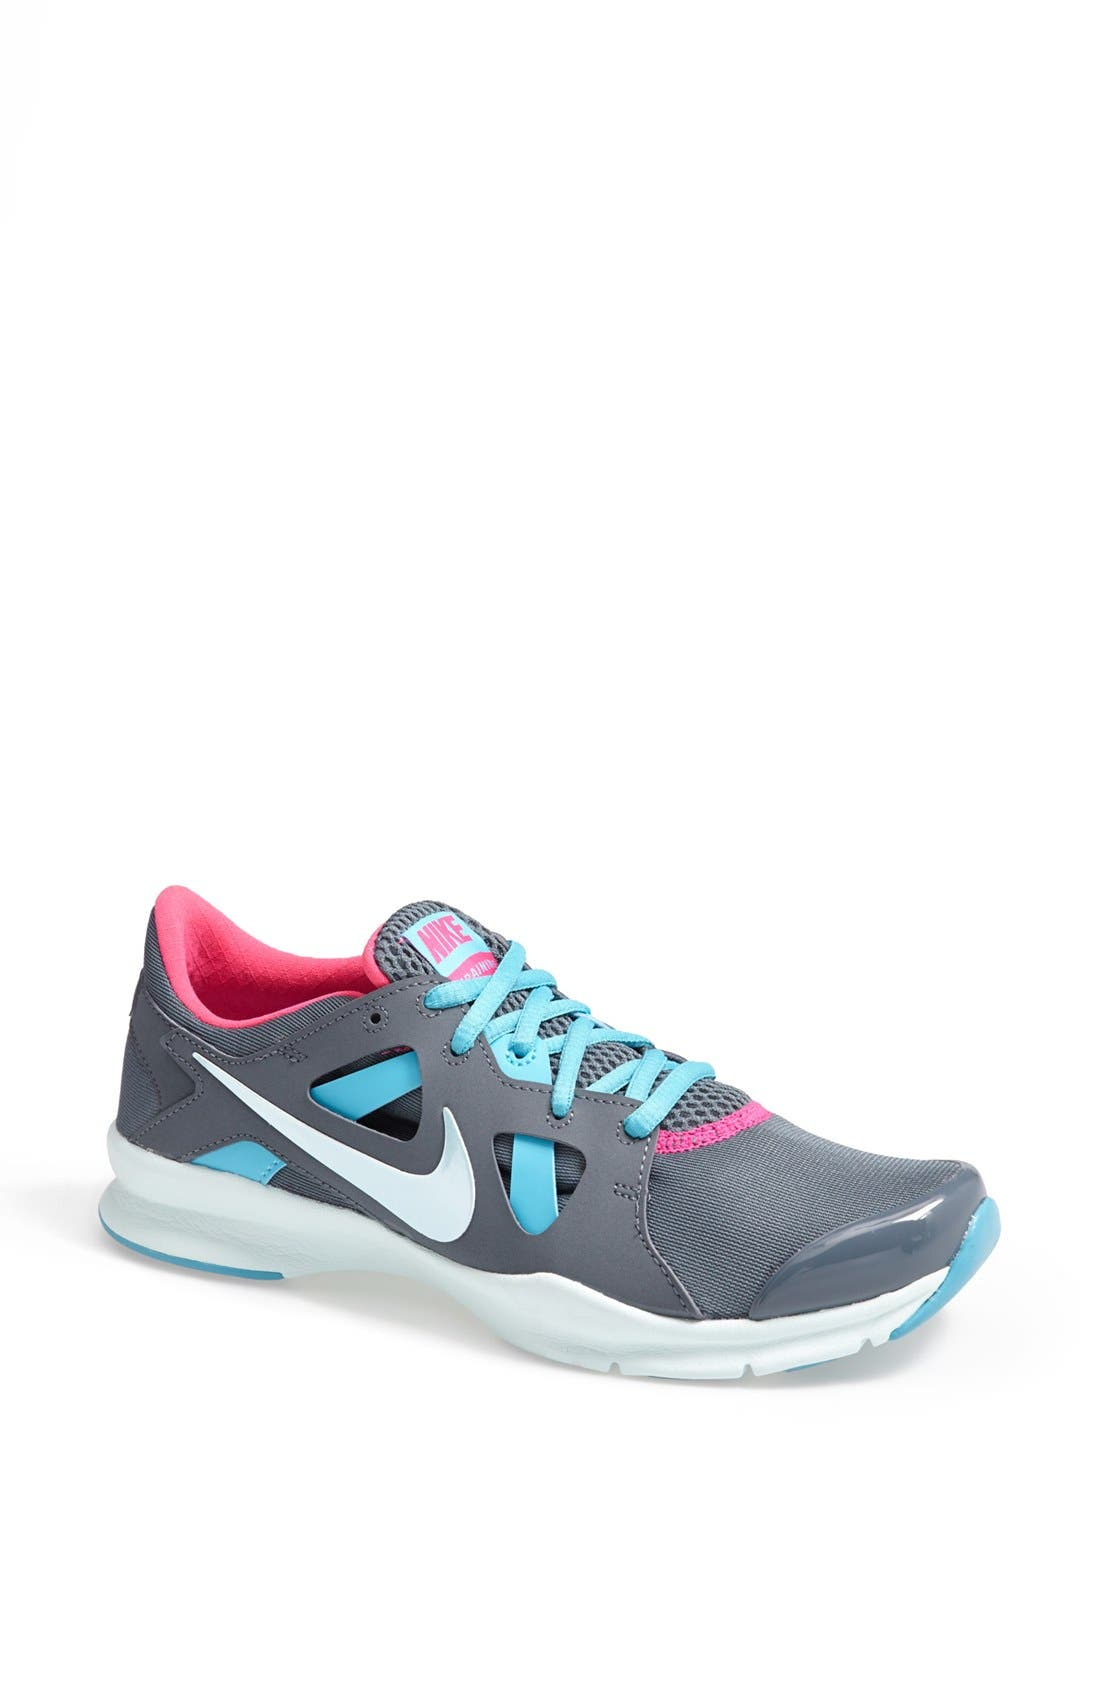 Main Image - Nike 'In Season 3' Training Shoe (Women)